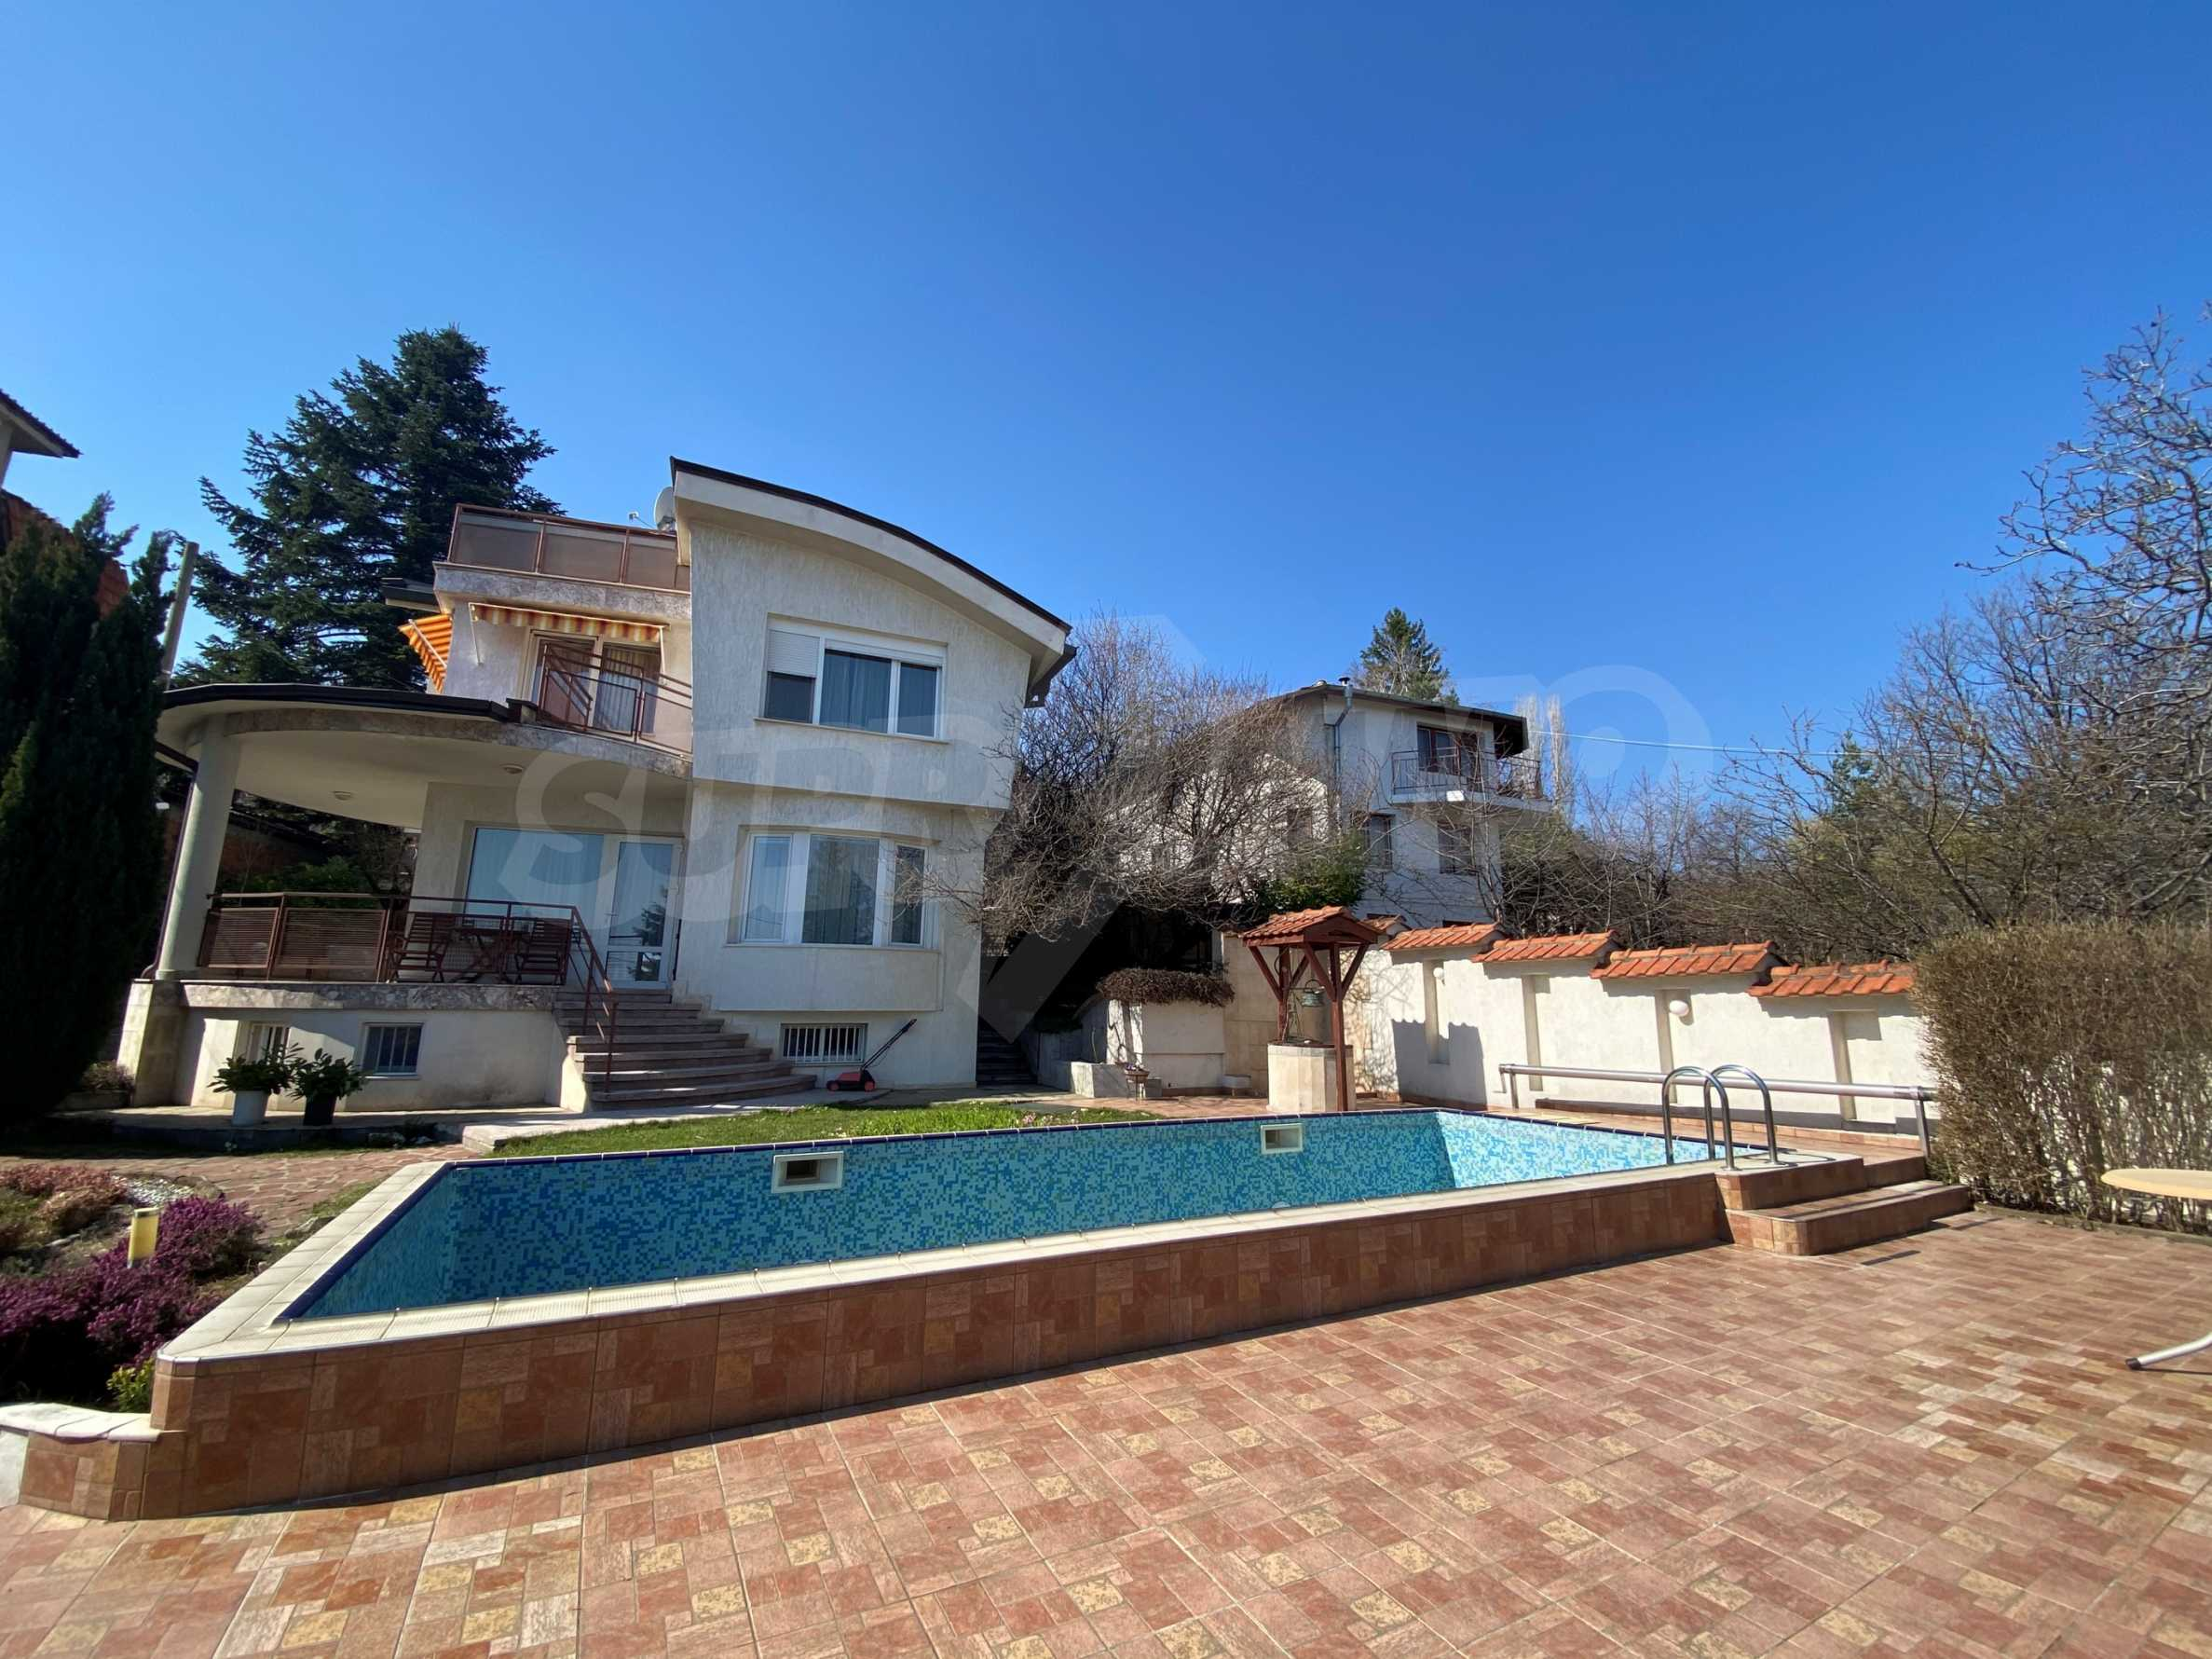 Family house with swimming pool in Dragalevtsi district